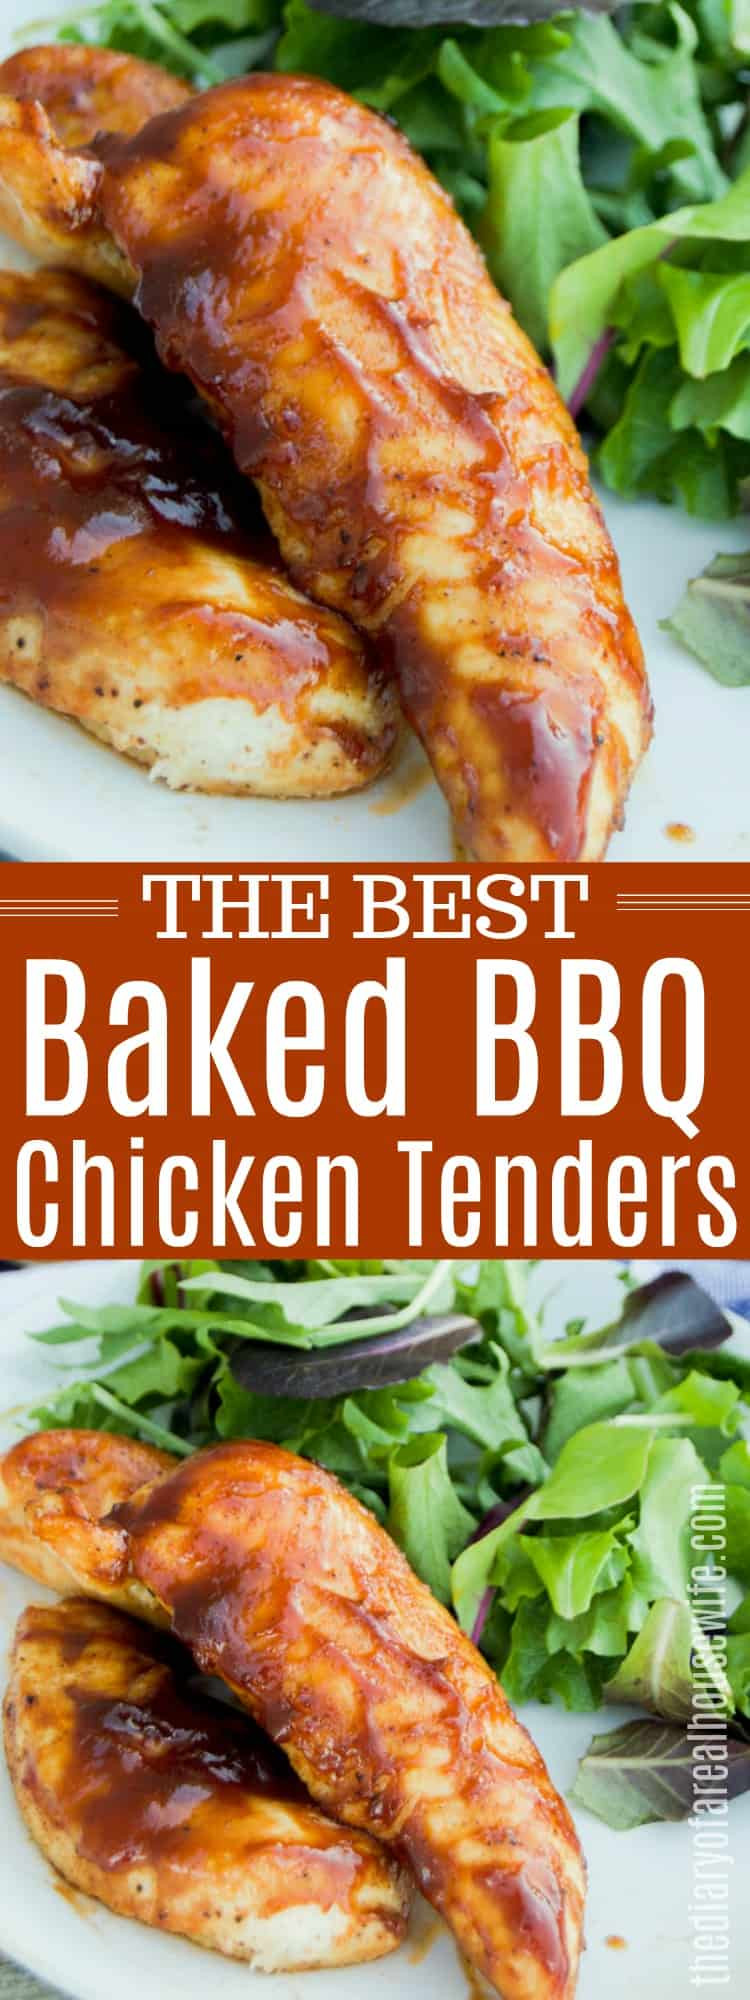 Baked Chicken Tenderloin Recipes  Baked BBQ Chicken Tenders • The Diary of a Real Housewife